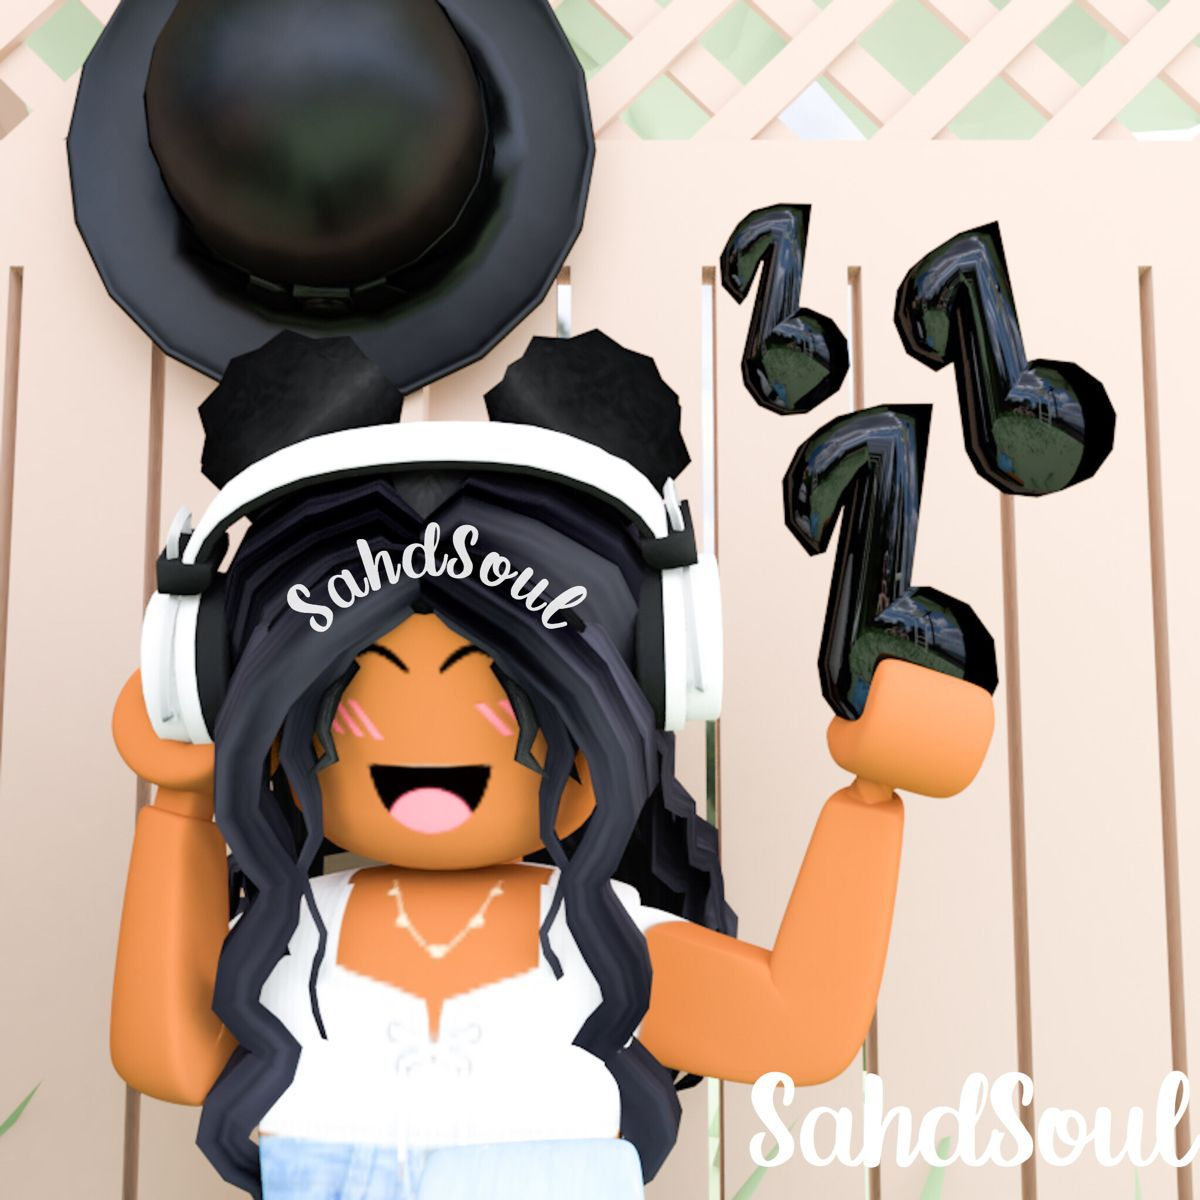 Pin by Søul on Roblox Gfx in 2020 Roblox pictures, Cute